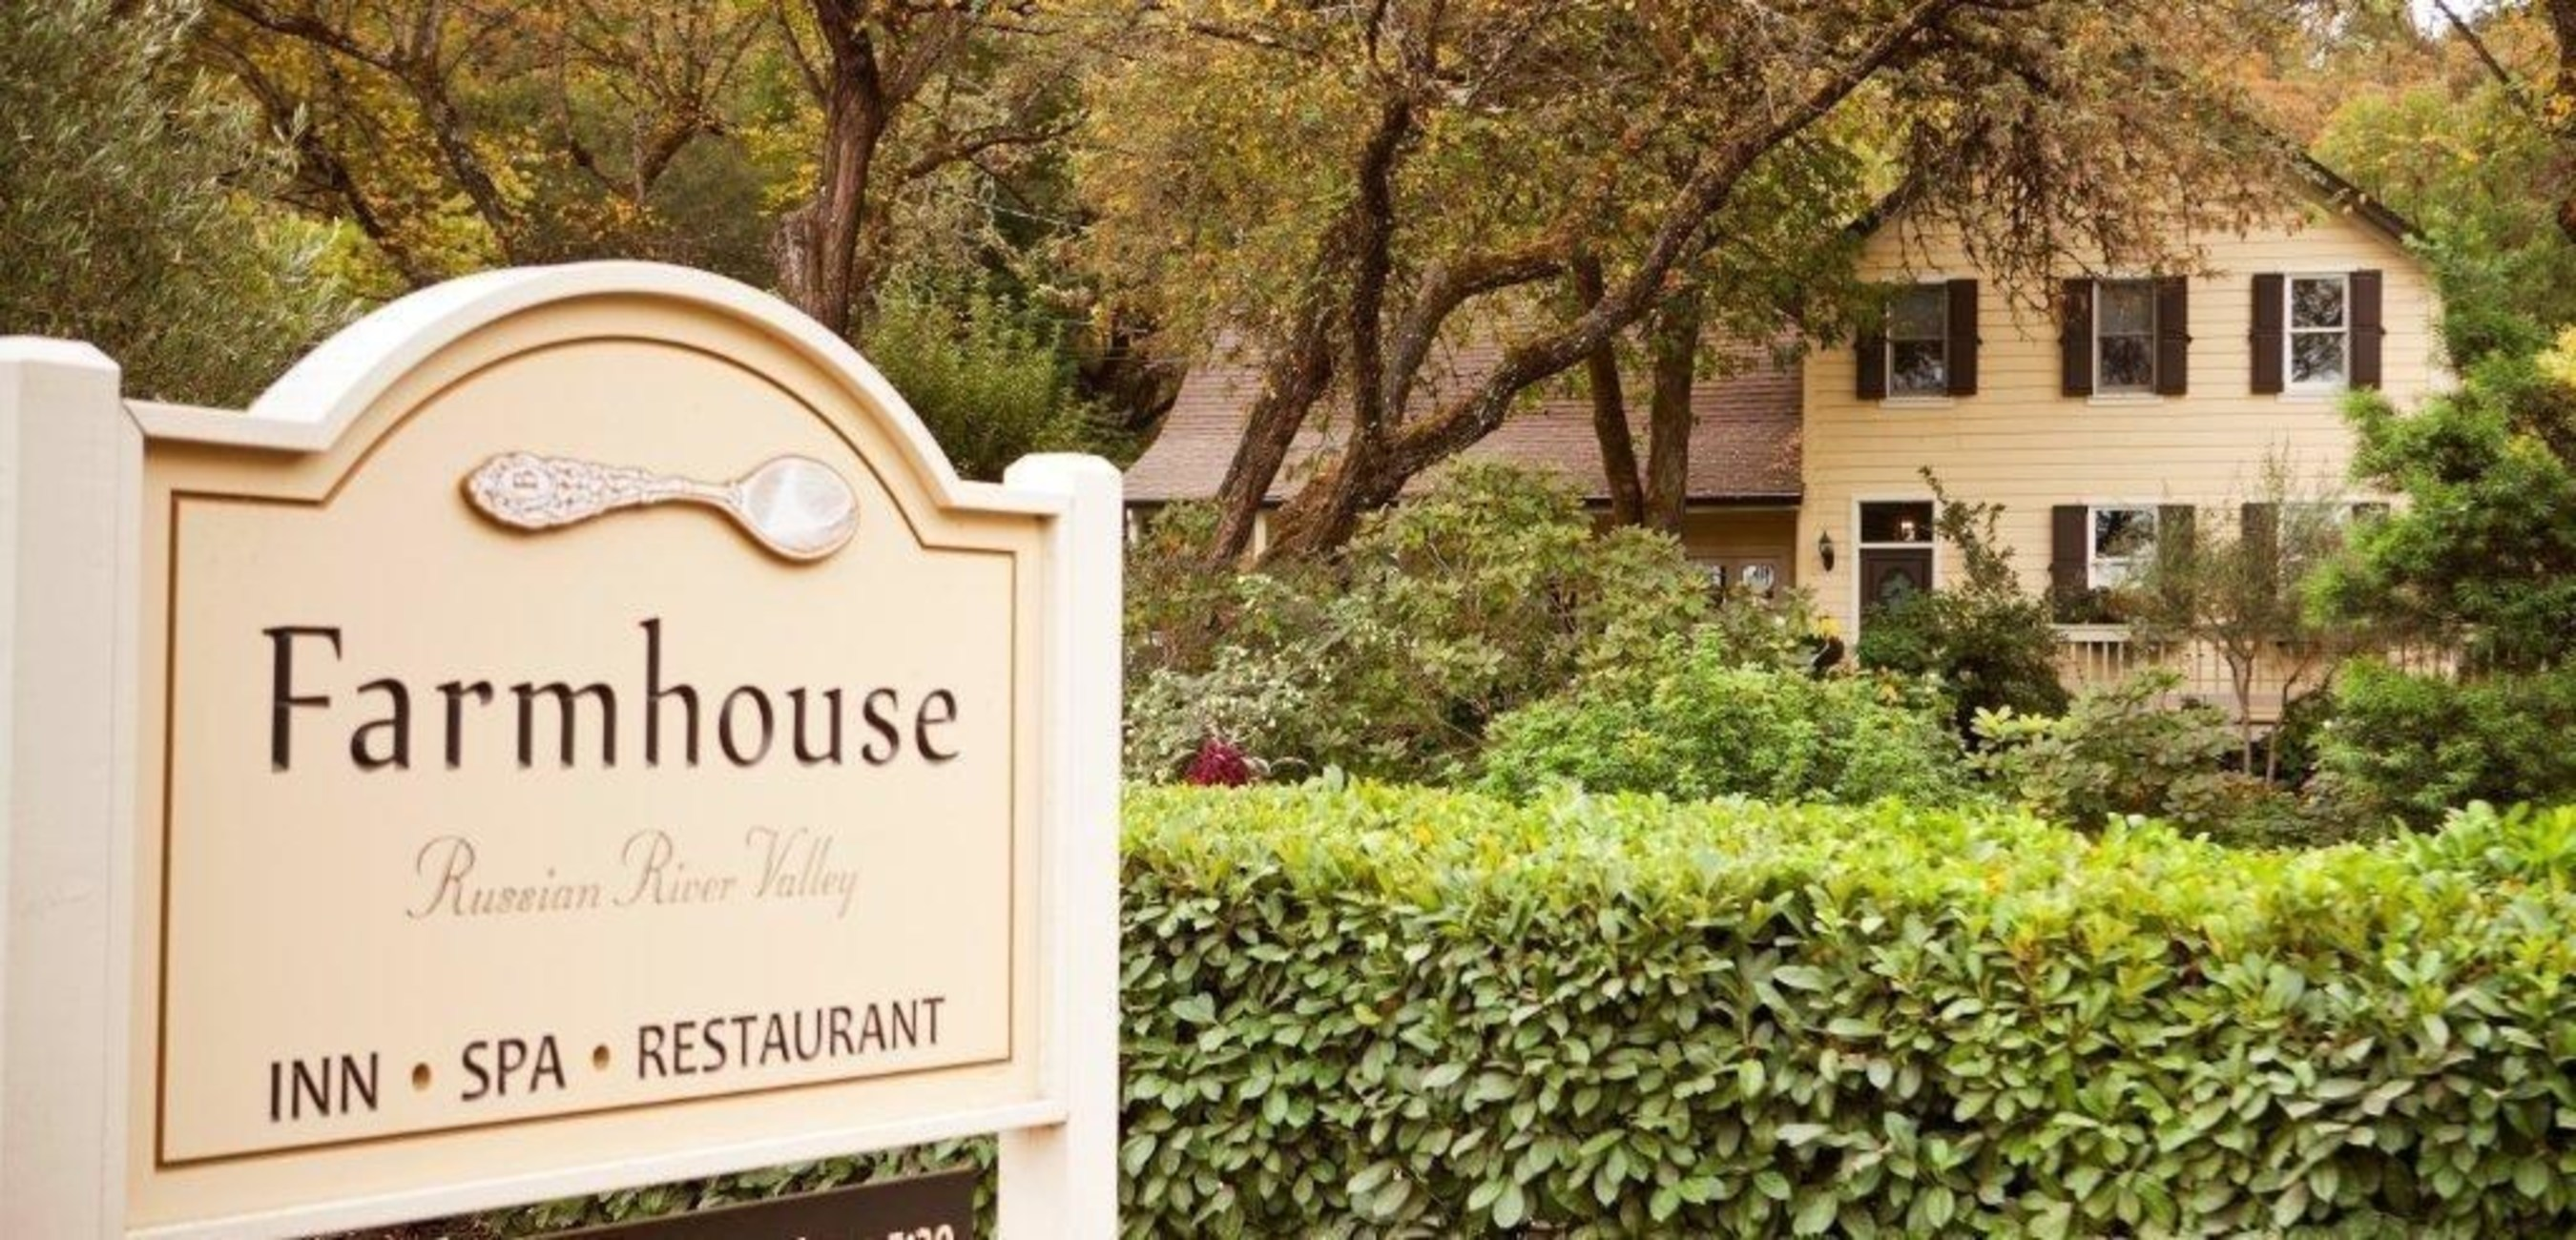 The Farmhouse Inn offers a free night to entice travelers to experience their luxurious new guest rooms, new spa, and property wide enhancements (PRNewsFoto/Farmhouse Inn)